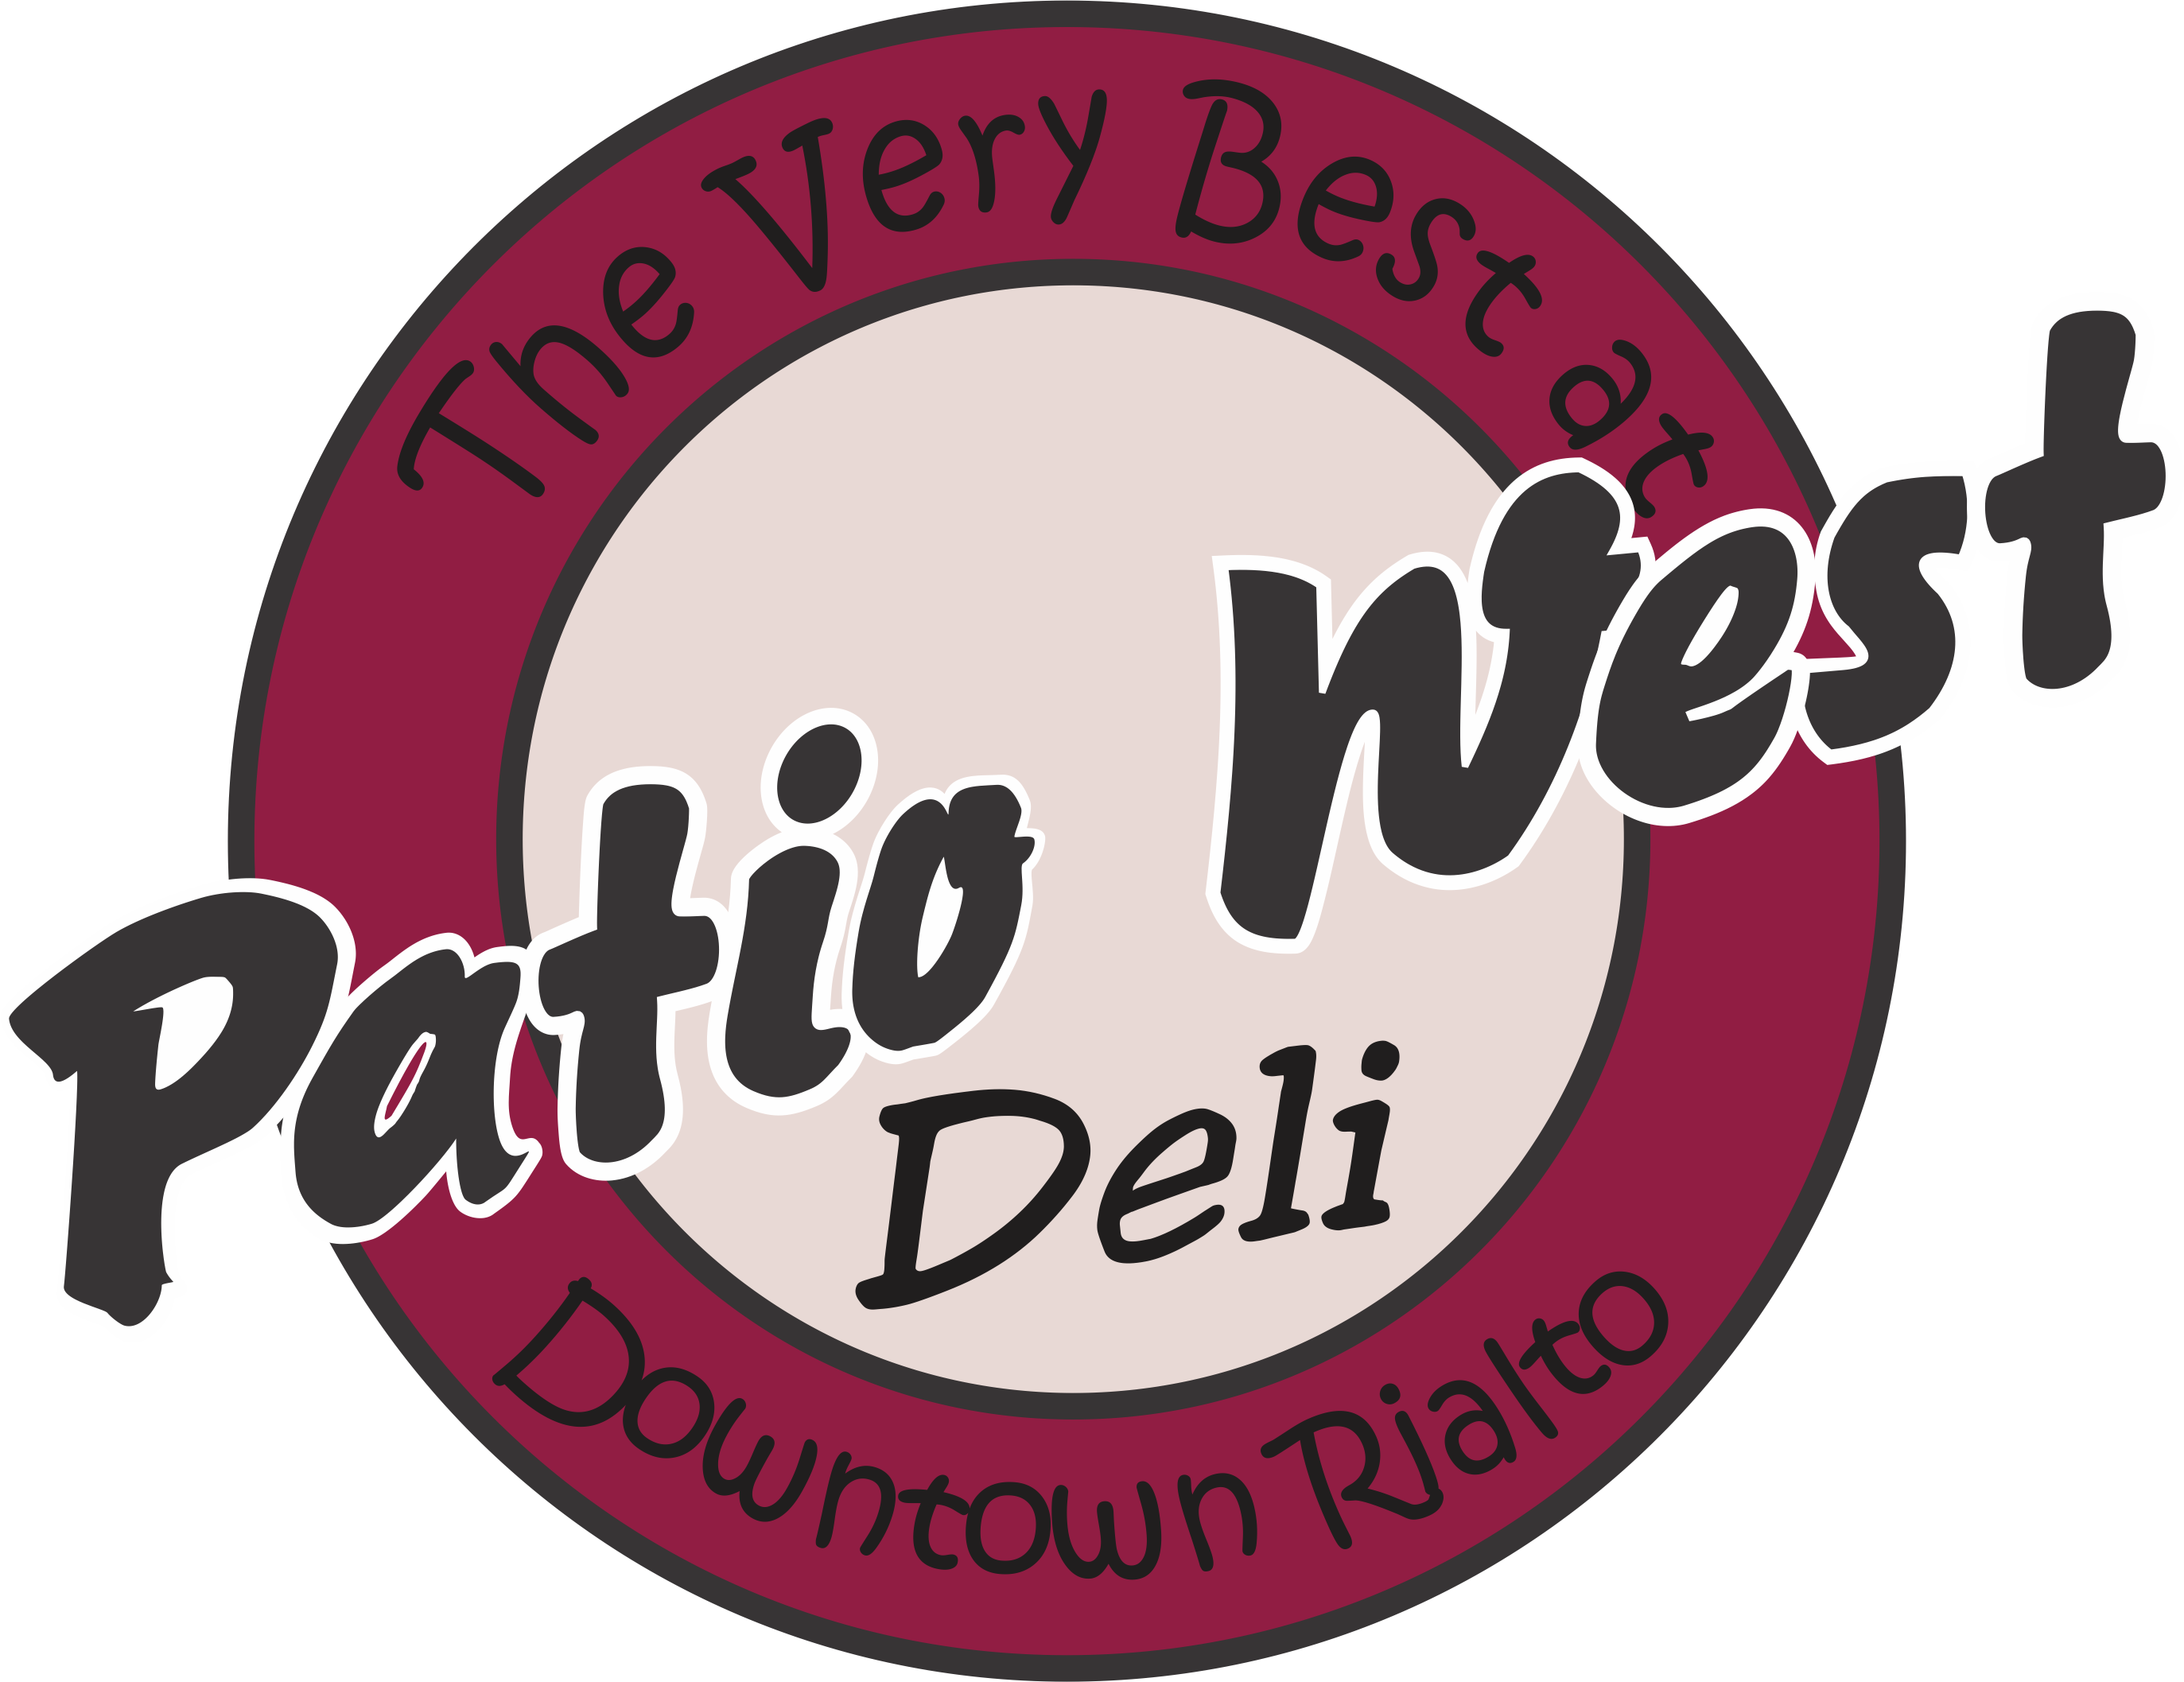 Patio West Deli